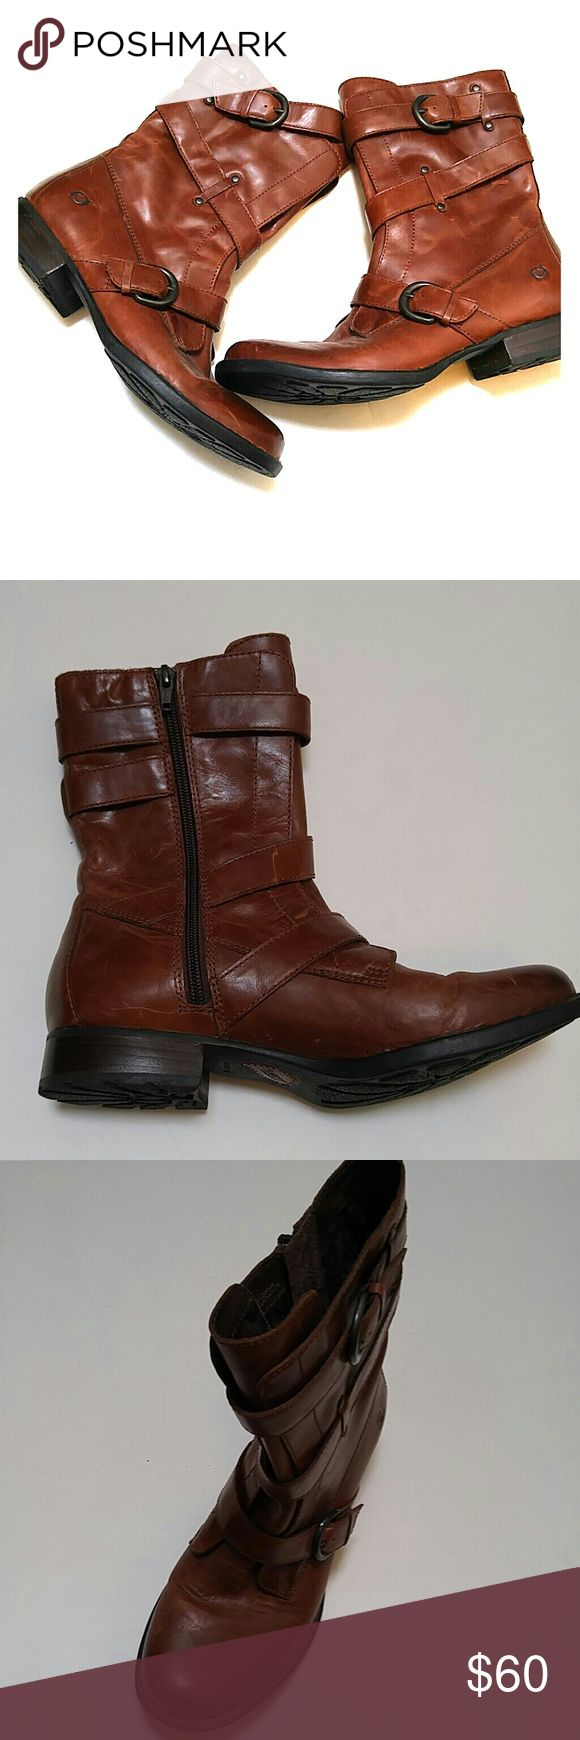 Born Boots Brown Born Boots. Cheetah pattern on the inside. Zips down the side. Movable inside tongue. Adjustable buckle. Soles in good condition. Light scratches from normal wear. In good condition. Size 8.5M. Upper made from 100% leather. Man made sole. Born Shoes Combat & Moto Boots